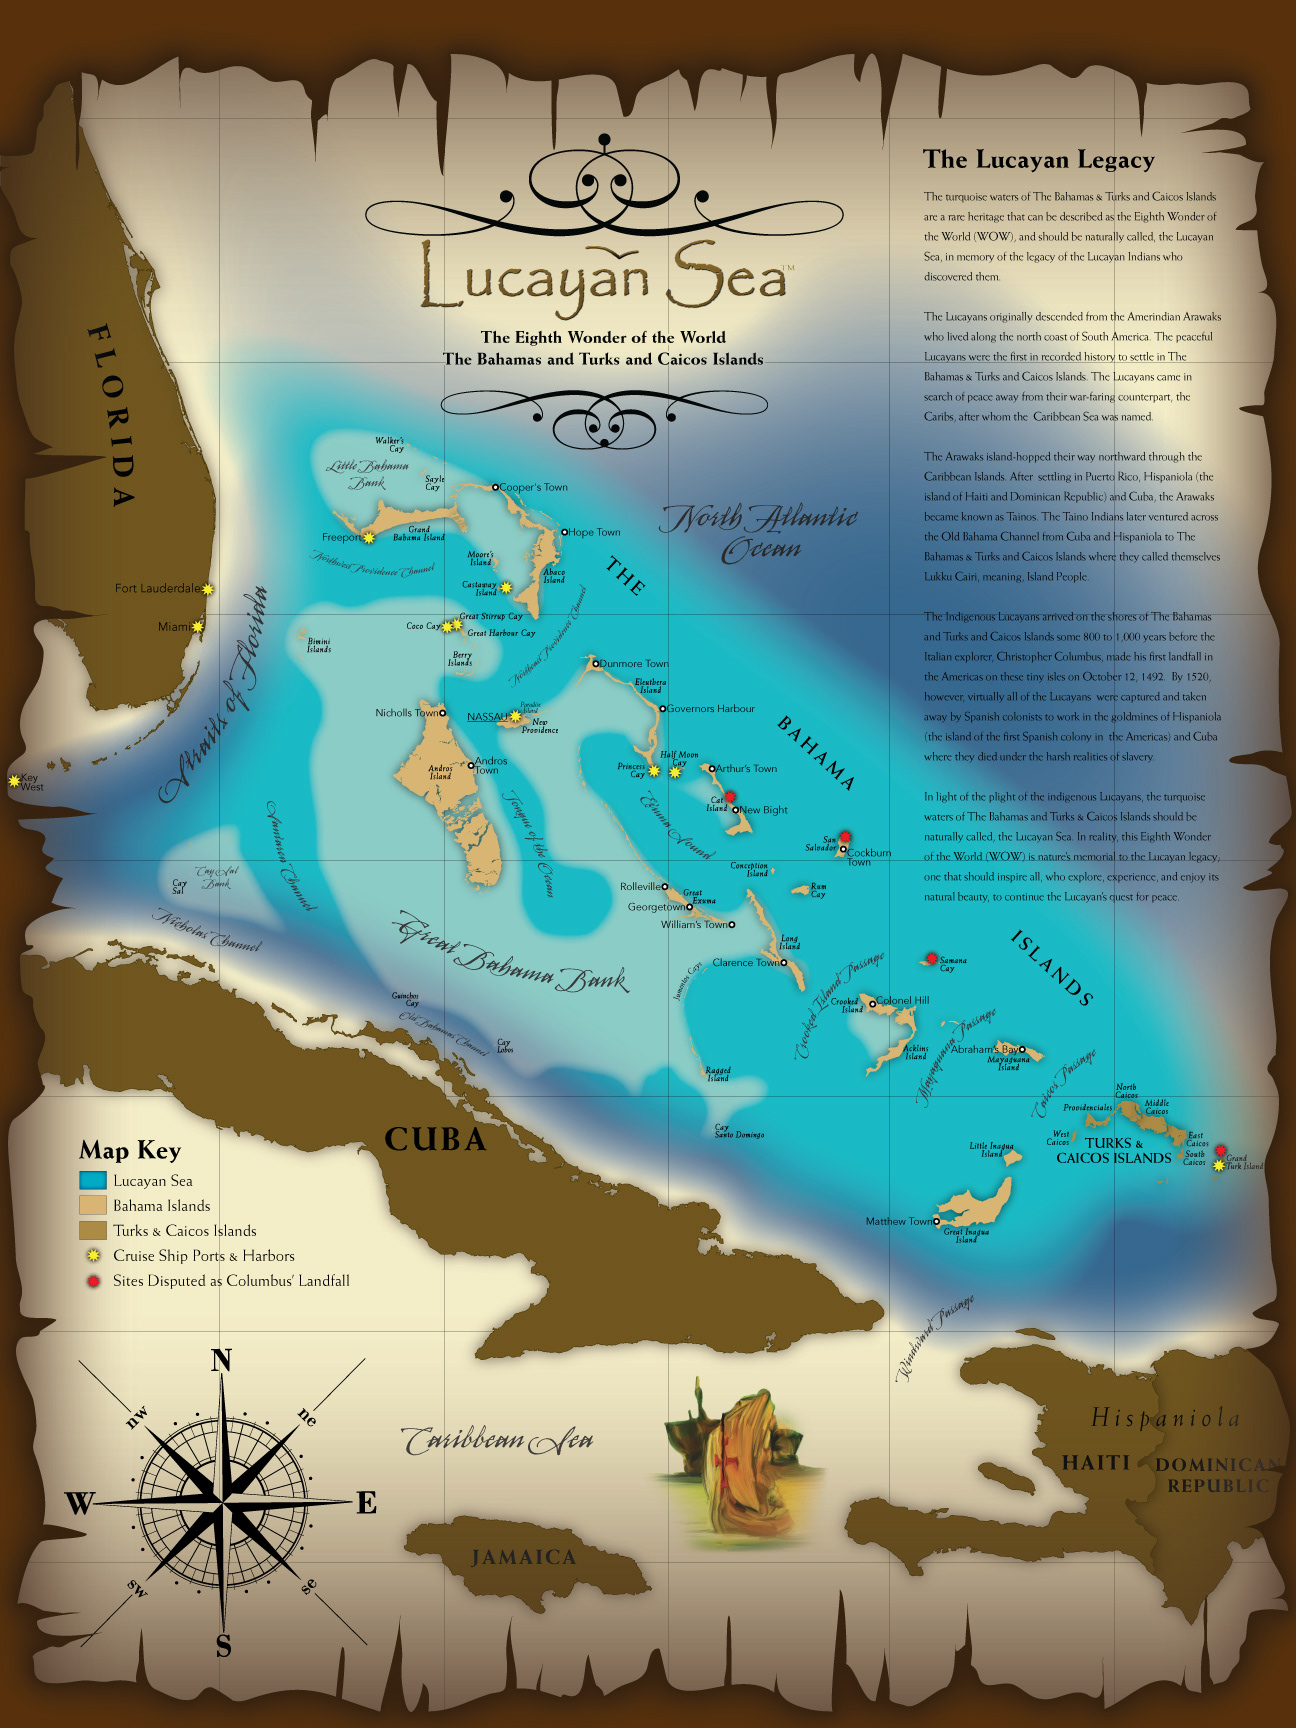 Eric olason mapmaker cartographic artist oldstyle lucayan sea single oversize map created for a private client who contracted me through elance highlighting the bahamas and the aquatic area around known as the publicscrutiny Images